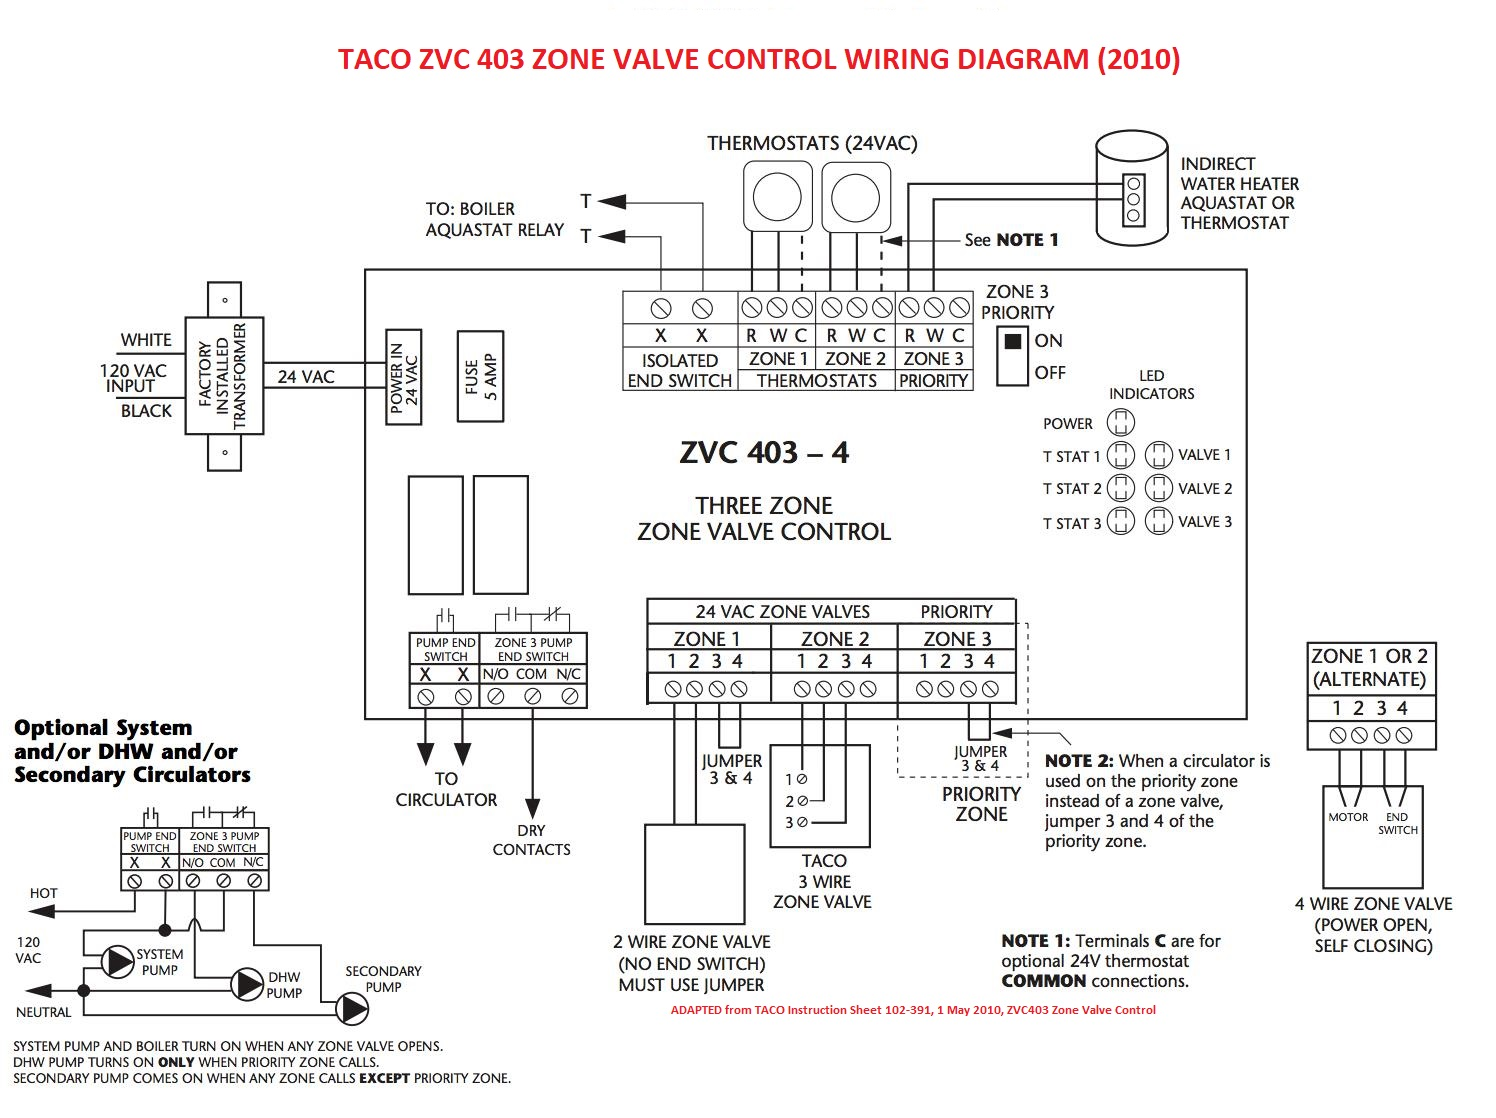 [SCHEMATICS_48IS]  Zone Valve Wiring Manuals Installation & Instructions: Guide to heating  system zone valves - Zone valve installation, inspection, repair guide | Johnson Controls Wiring Diagram |  | InspectAPedia.com